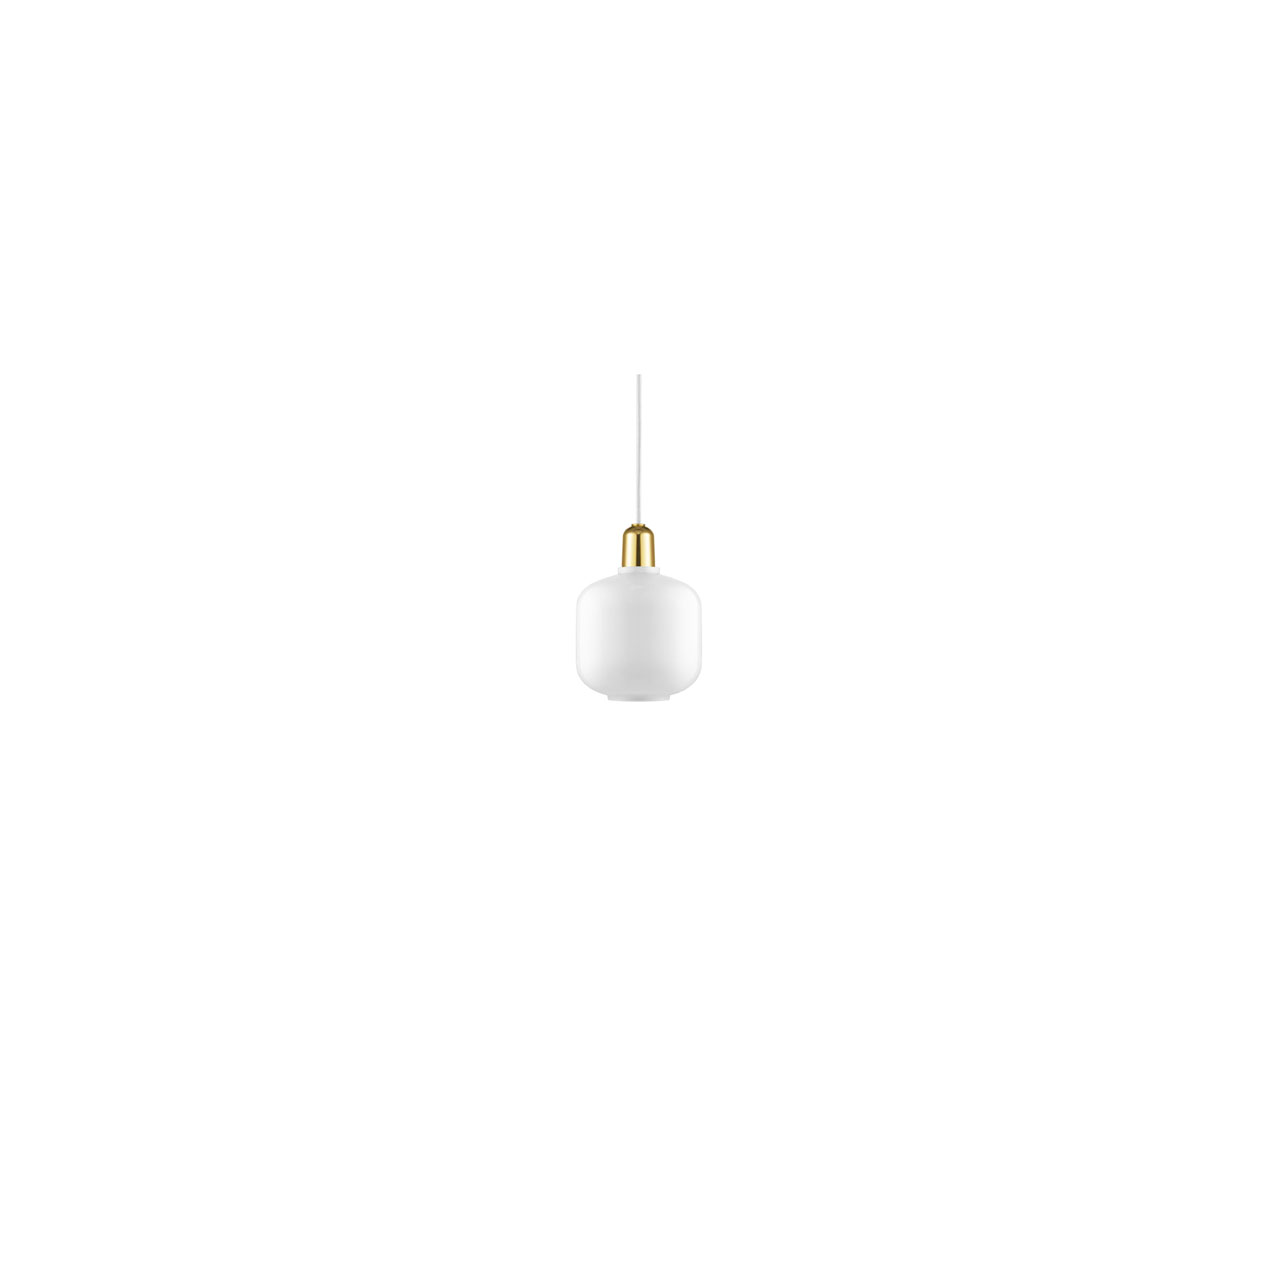 Amp Lamp Small Brass Eu White/Brass von Normann Copenhagen